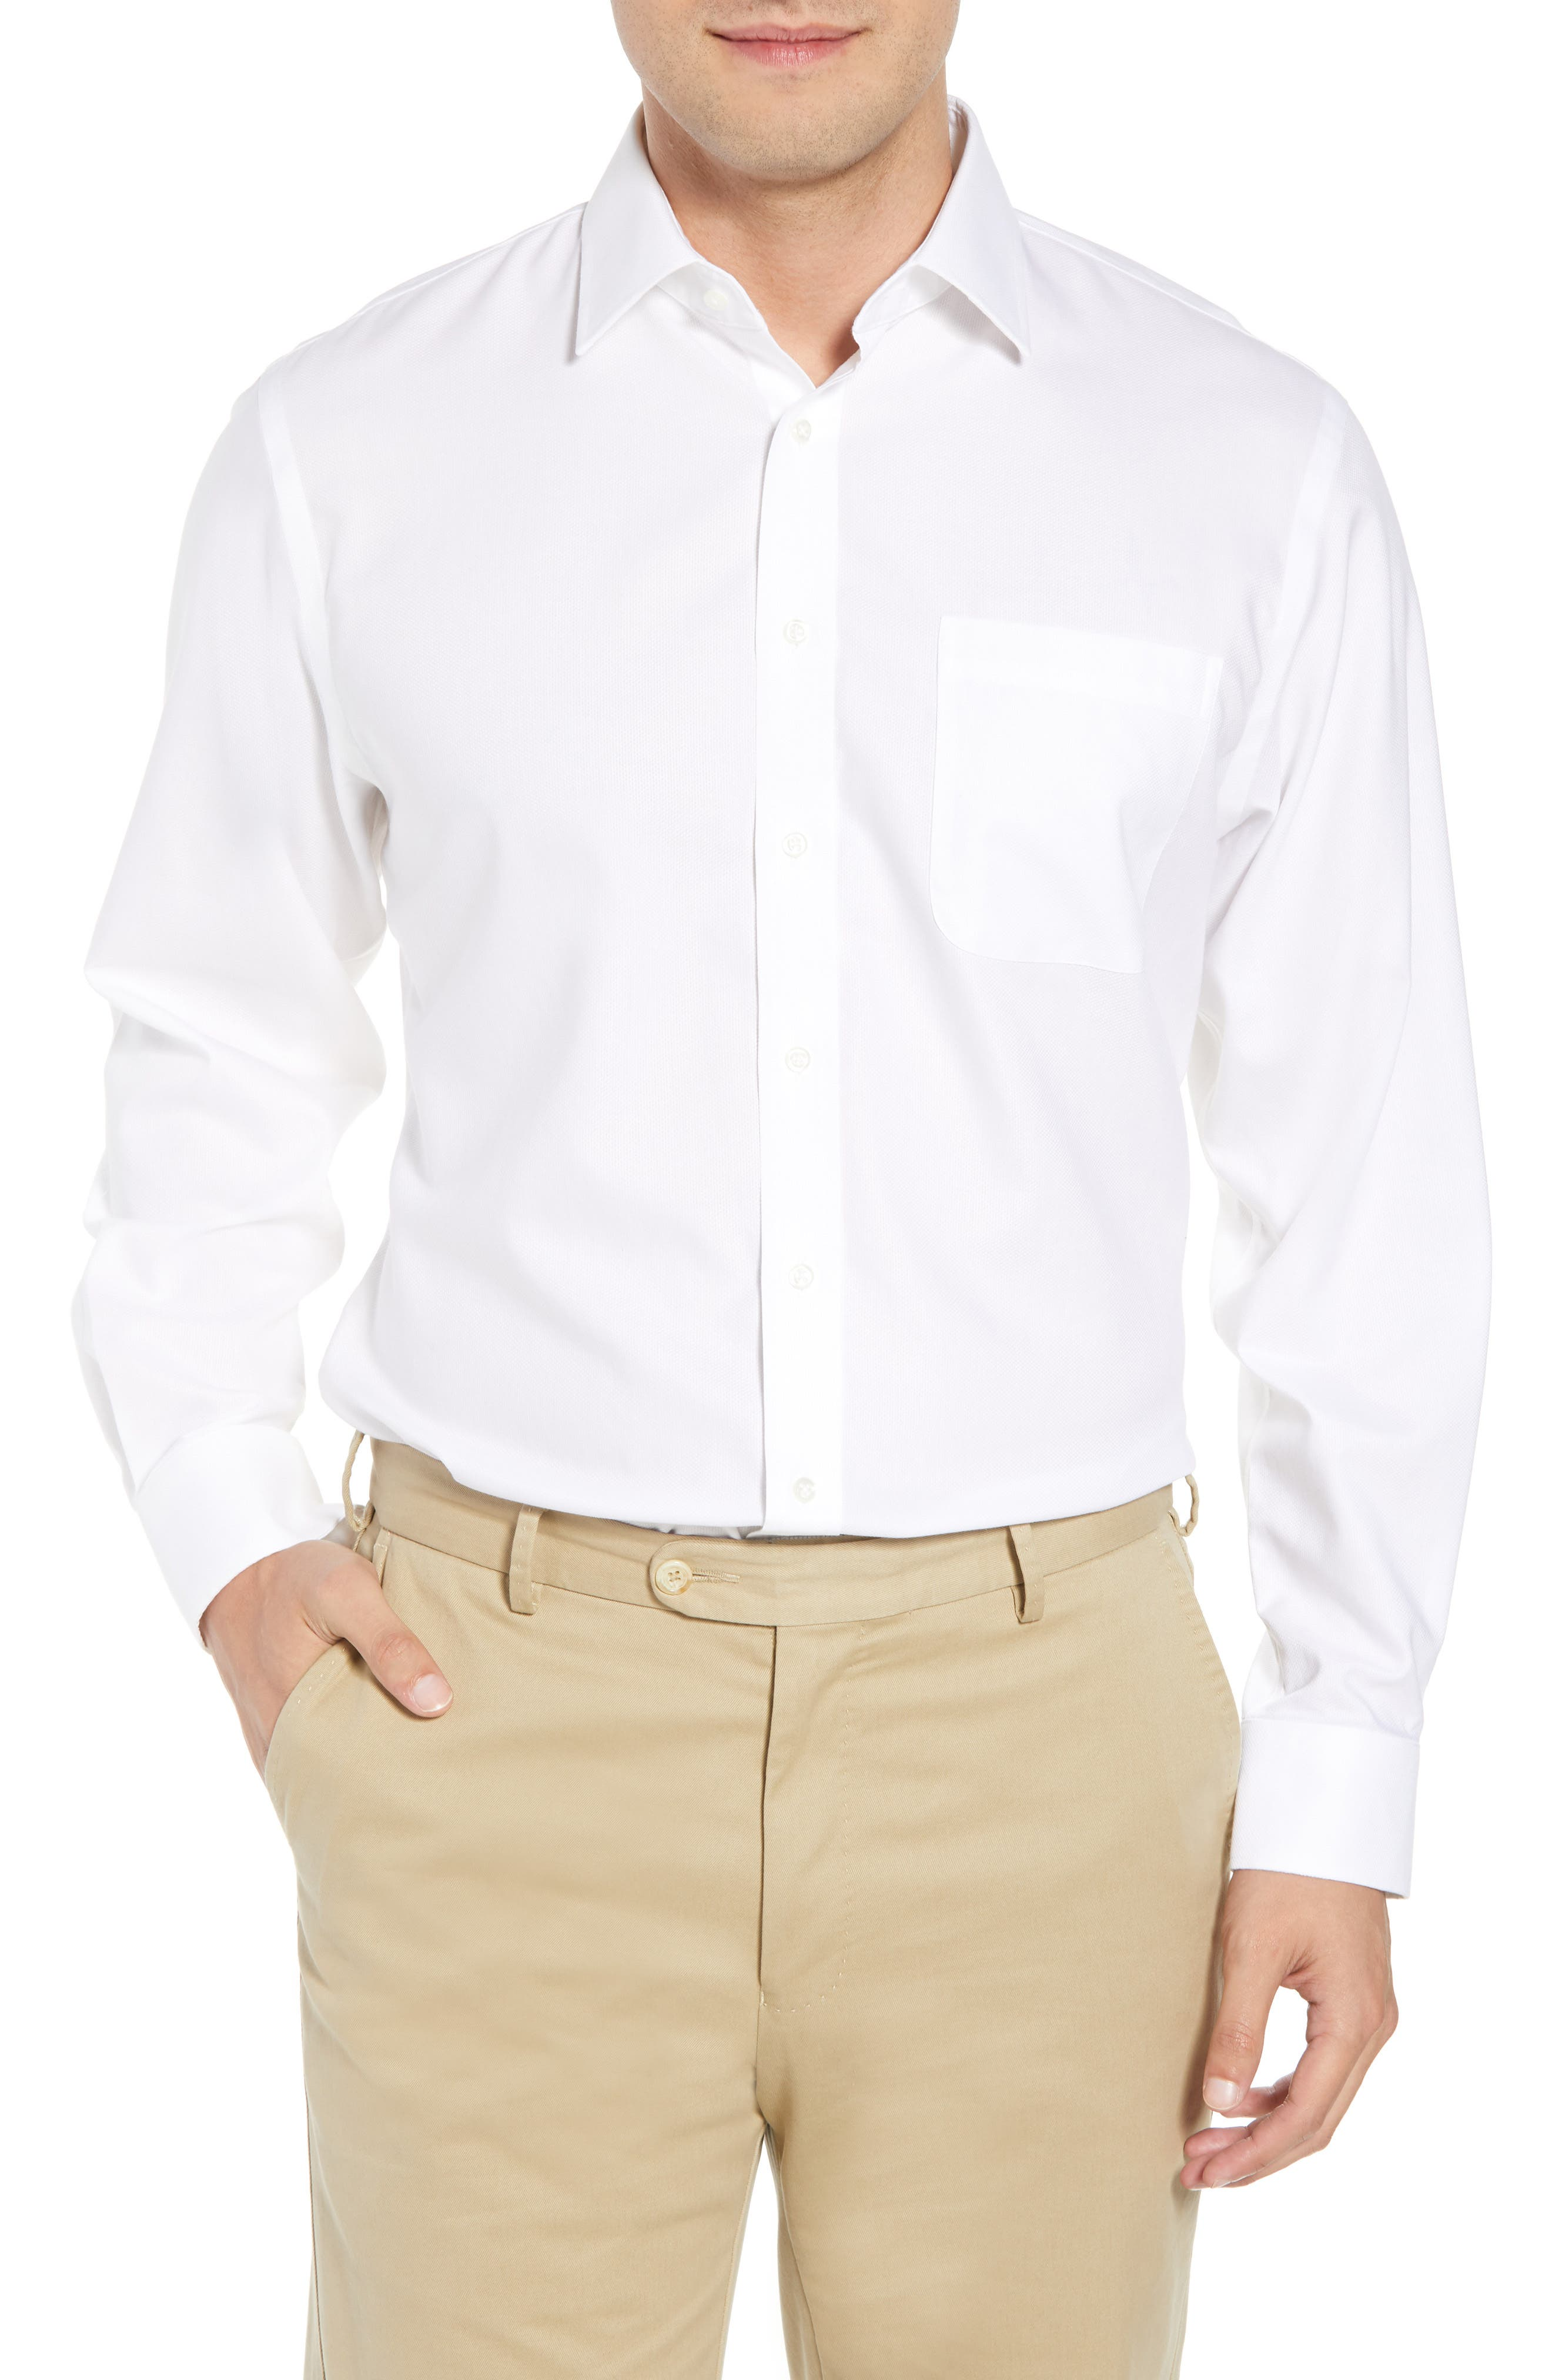 Smartcare<sup>™</sup> Traditional Fit Solid Dress Shirt,                         Main,                         color,